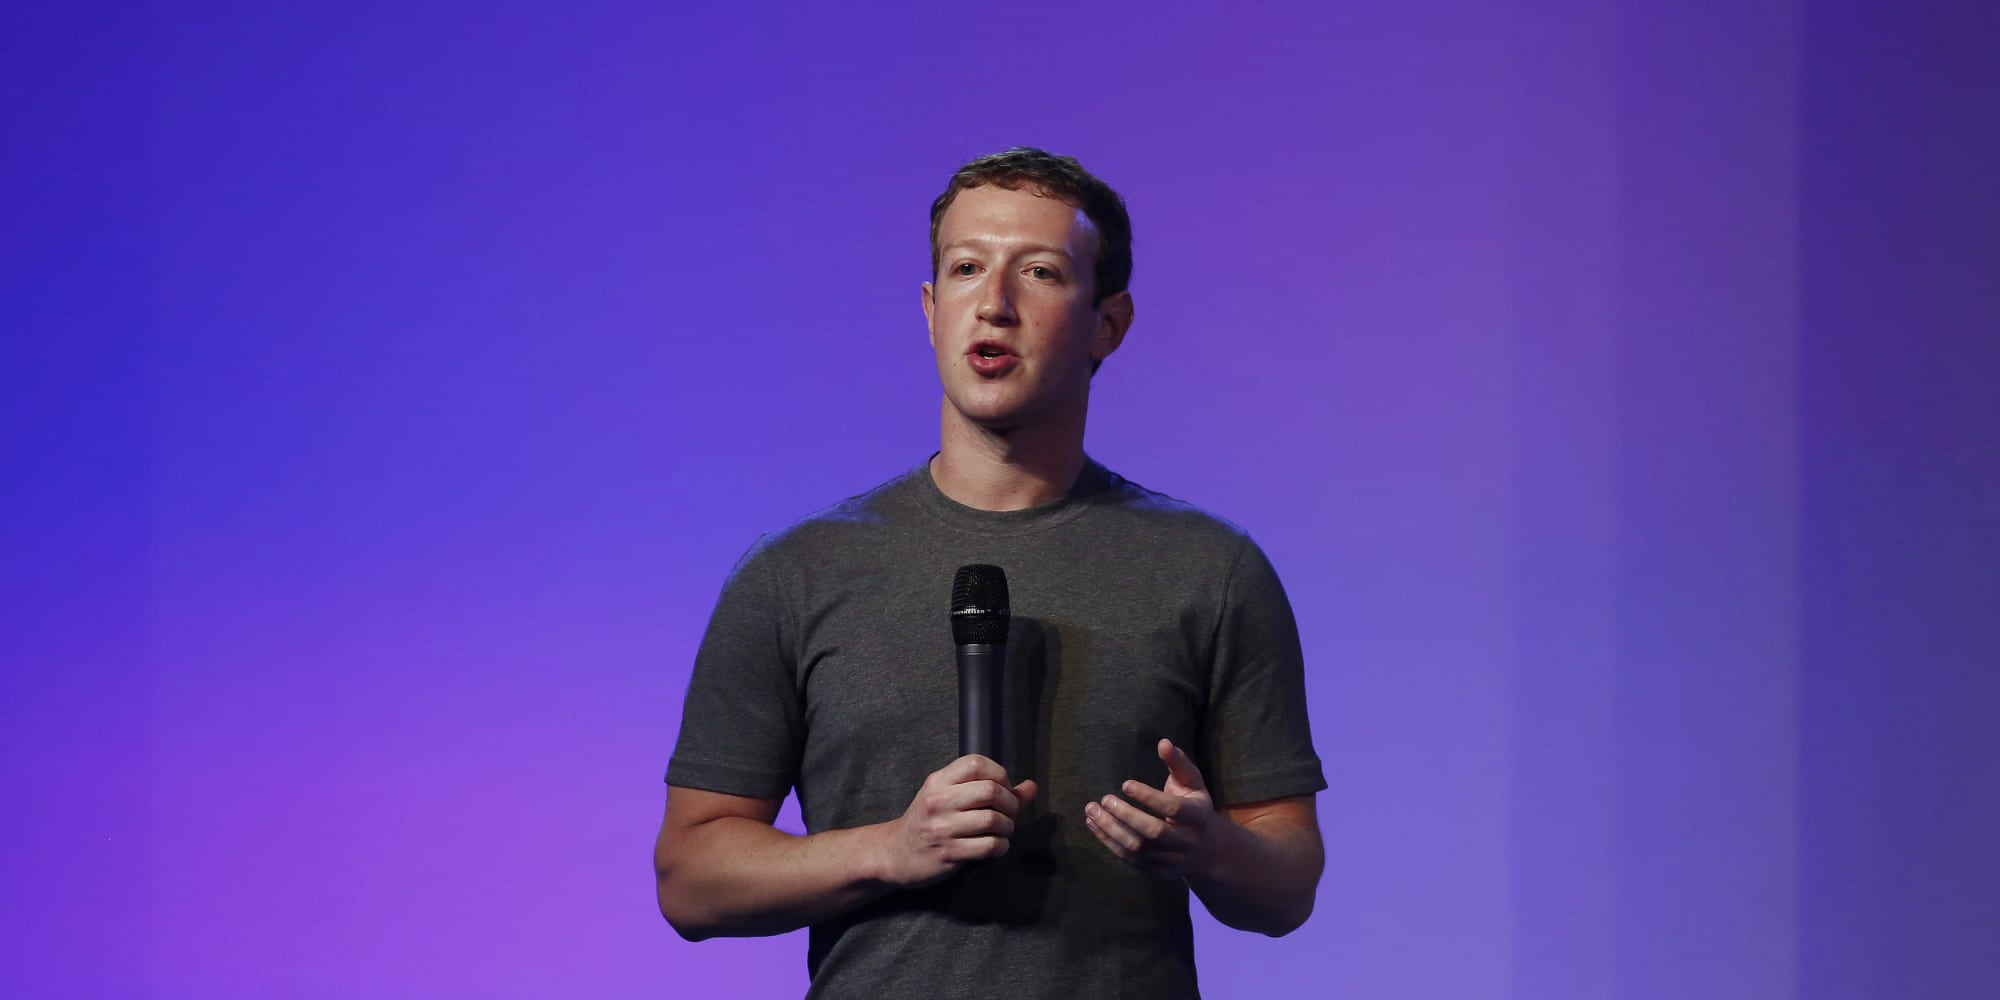 Mark Zuckerberg, founder and CEO of Facebook, addresses a gathering during the Internet.org Summit in New Delhi